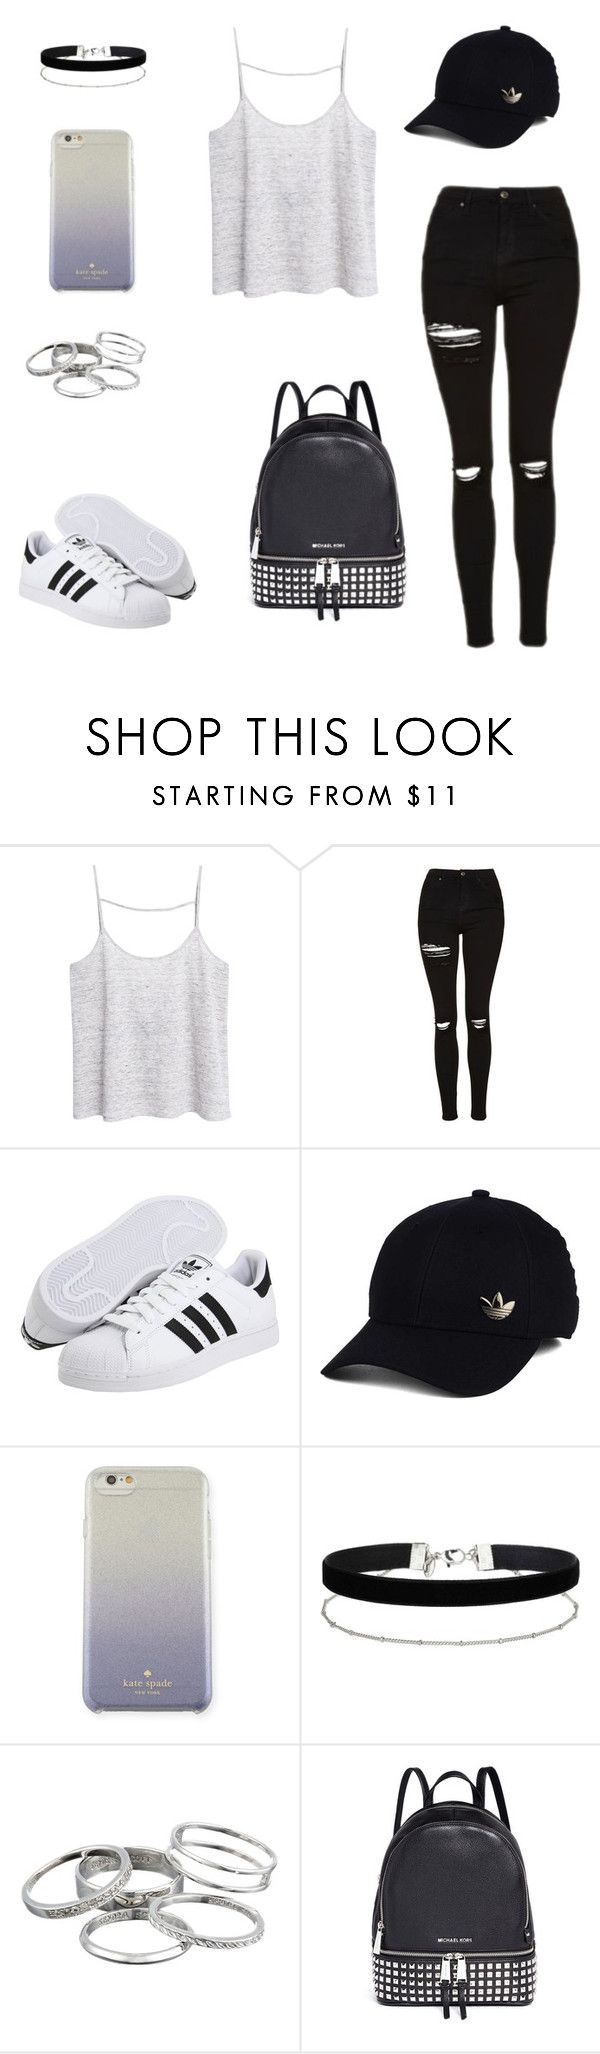 """Something with Adidas"" by nerdvines on Polyvore featuring MANGO, Topshop, adidas Originals, adidas, Kate Spade, Miss Selfridge, Kendra Scott and Michael Kors"